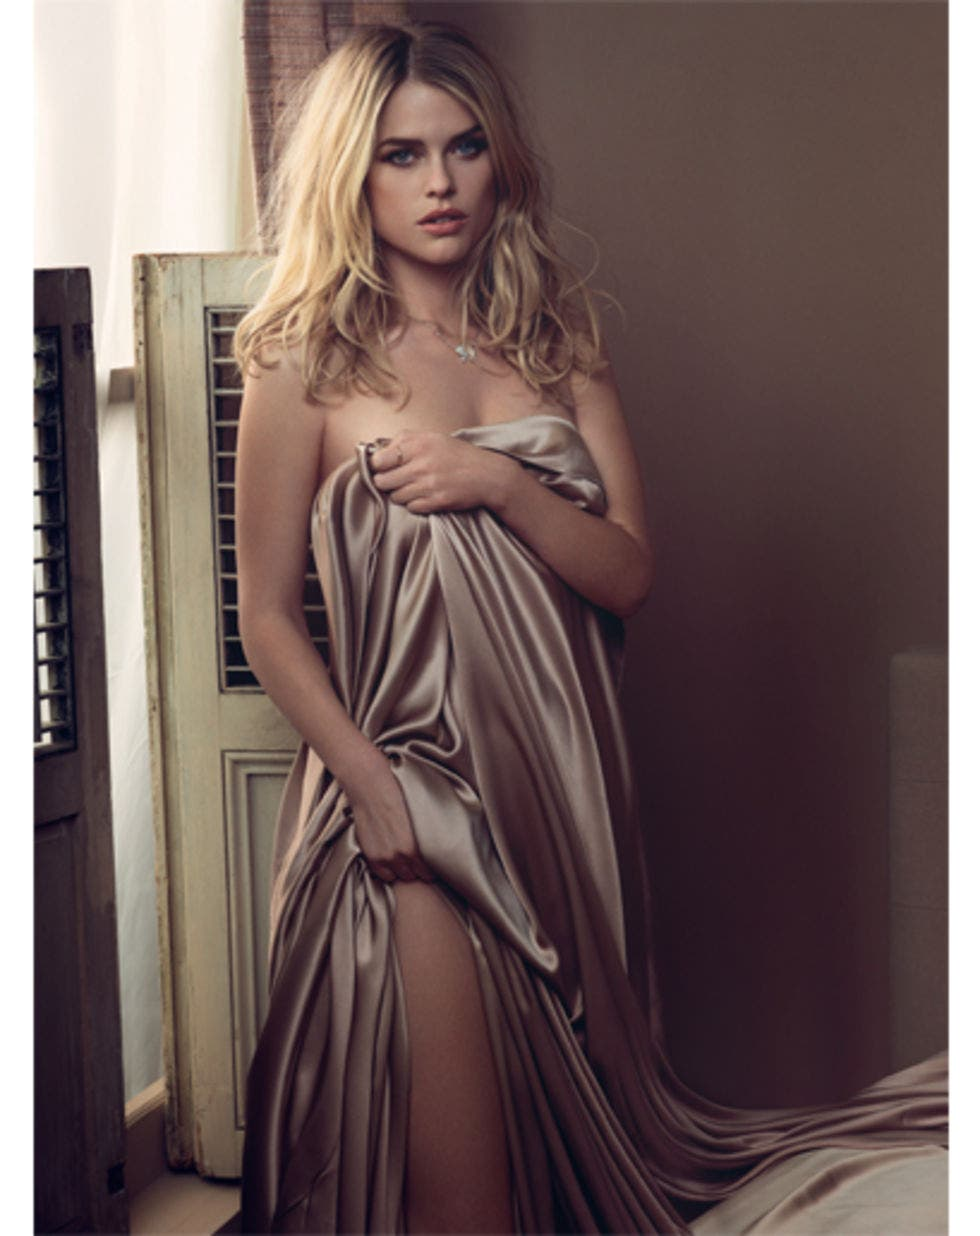 alice-eve-in-gq-magazine-june-2010-issue-not-hq-01